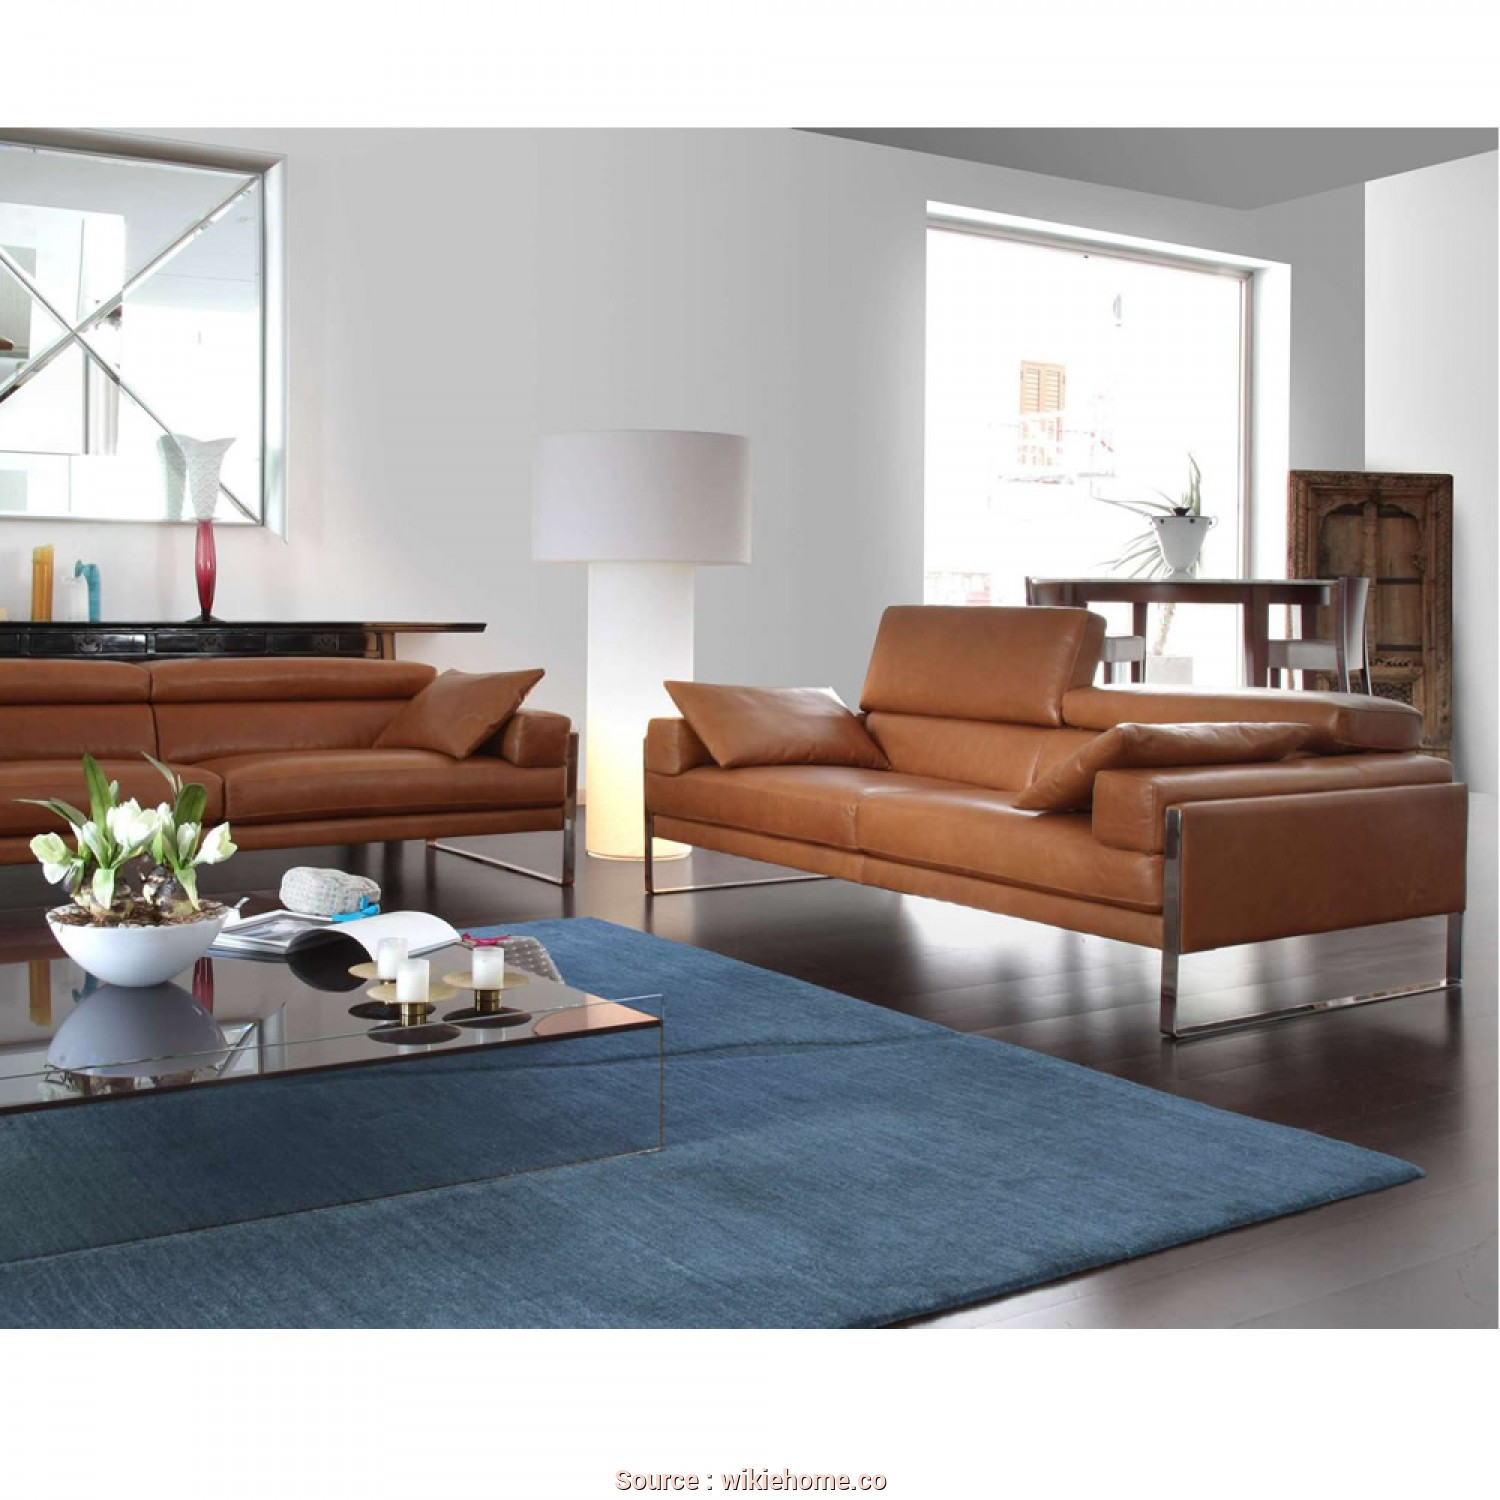 Calia Italia, Hop Uk, Completare Calia Italia Romeo 3Str Sofa Abitare Uk